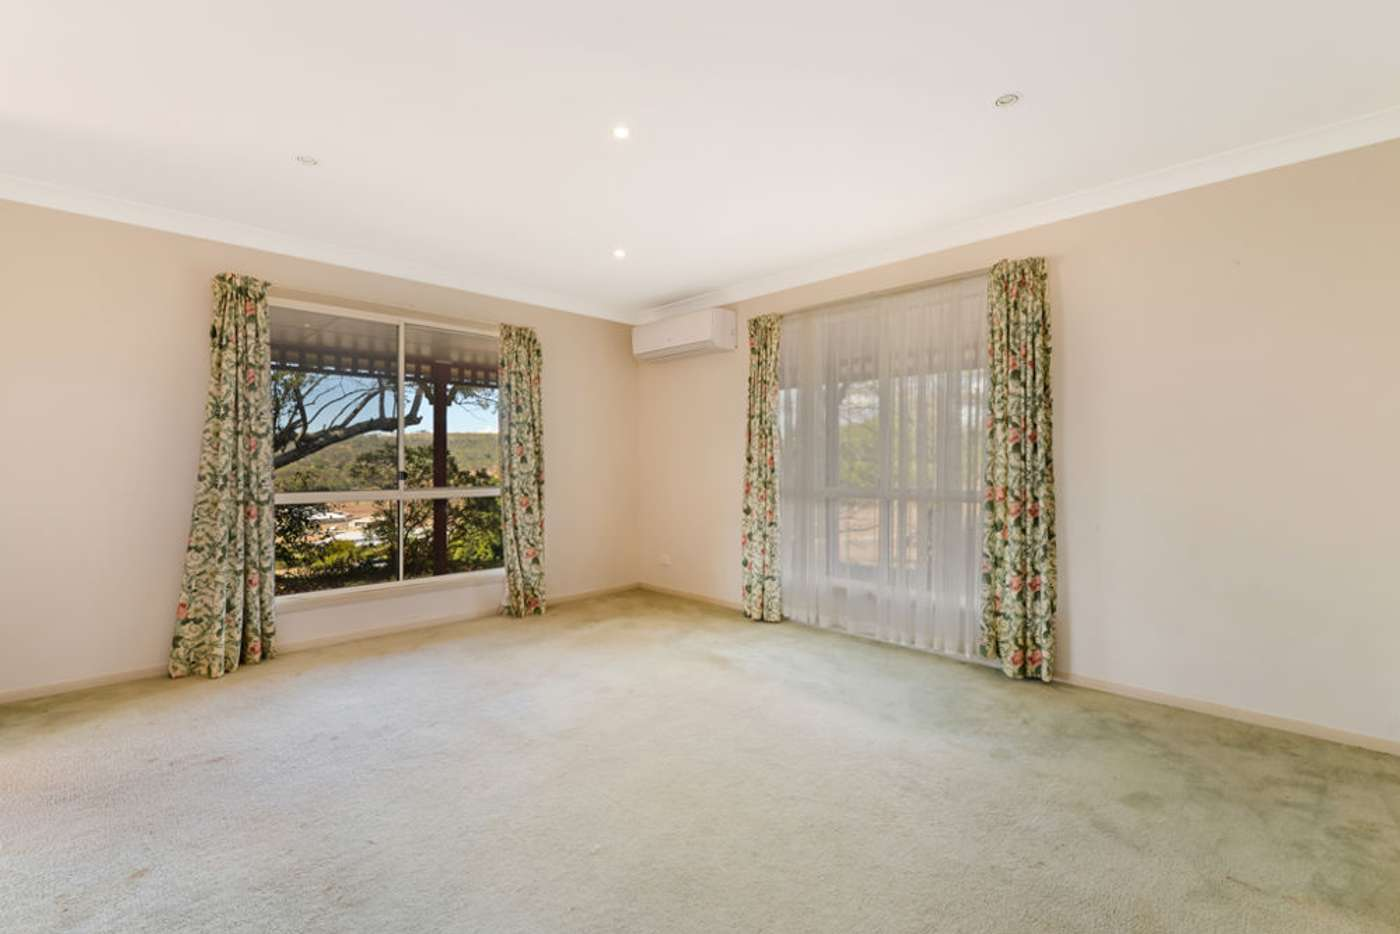 Seventh view of Homely house listing, 7 Ryans Drive, Cotswold Hills QLD 4350